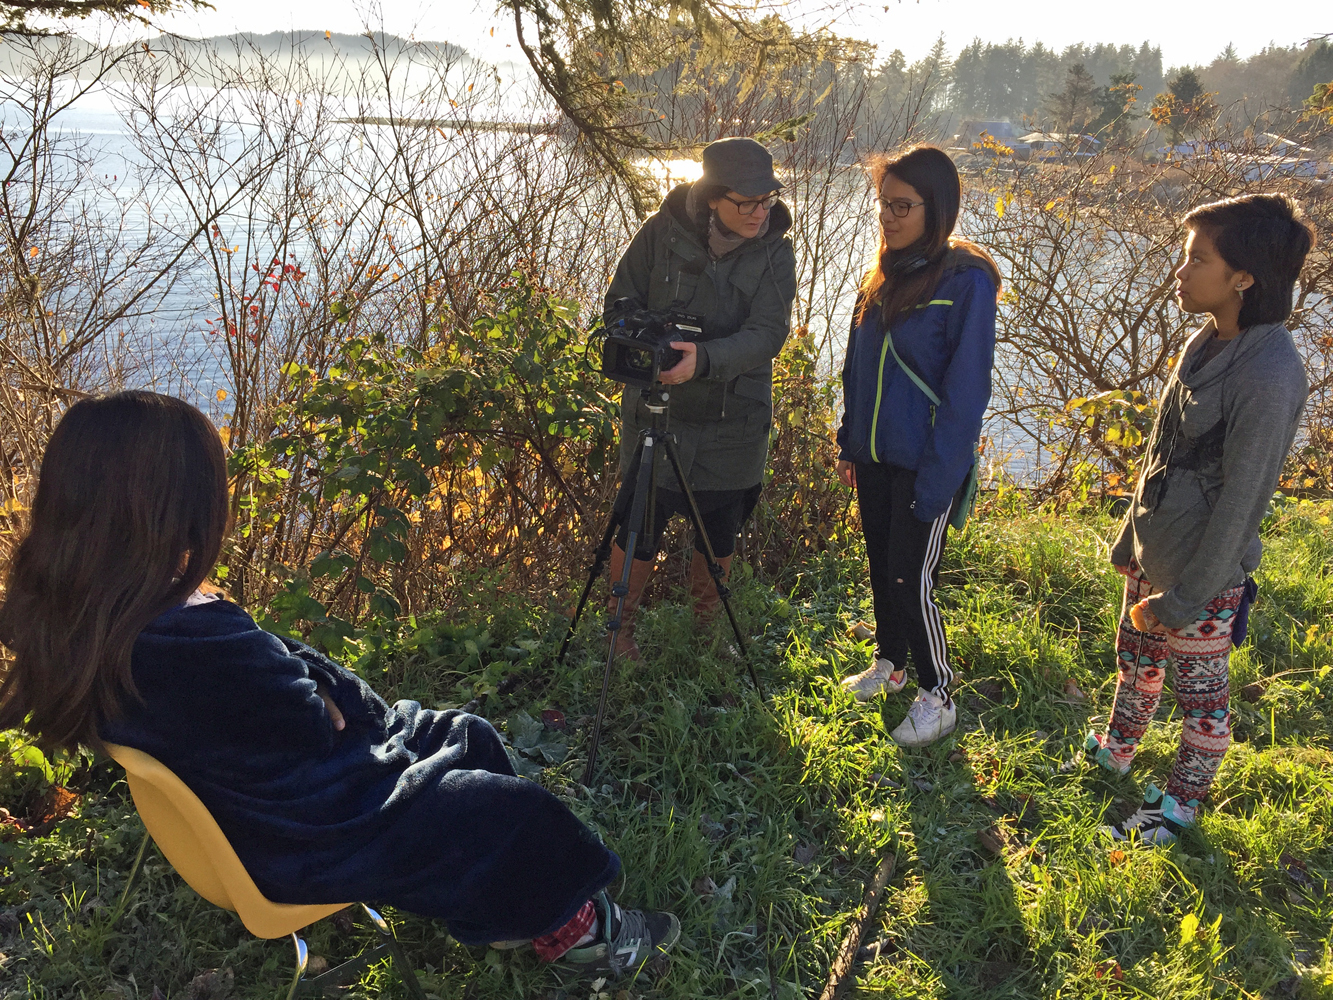 Mentor, Odessa, gives camera tips to Thelma as she interviews her sister Kali and her cousin Shandy.